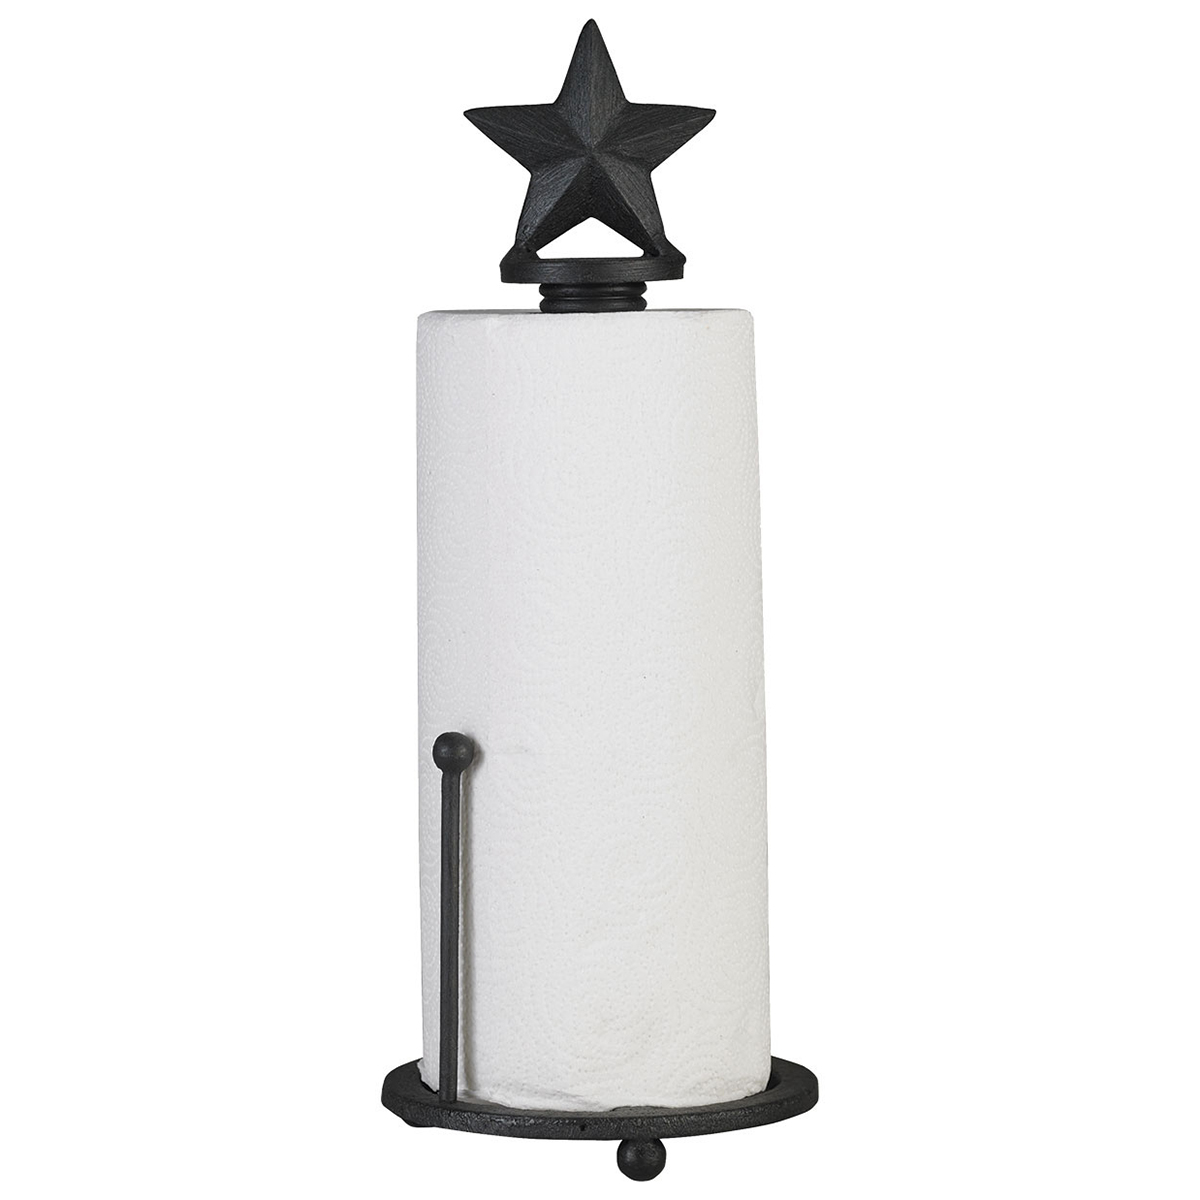 Black Star Paper Towel Holder